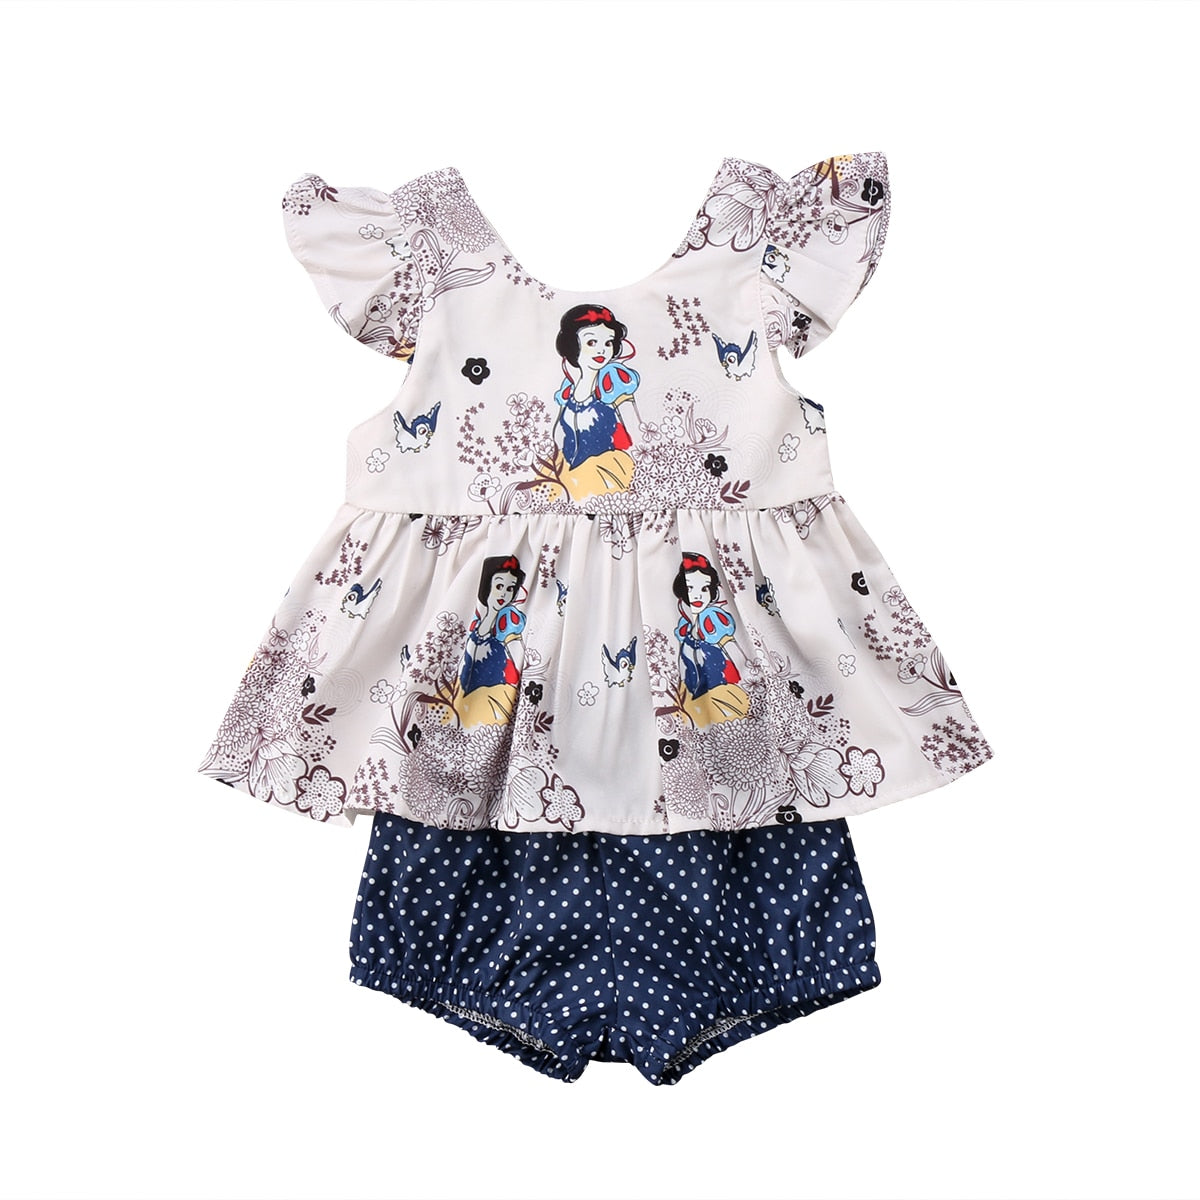 Baby Girl's Vest Top + Short Cute 2pcs Outfit Set